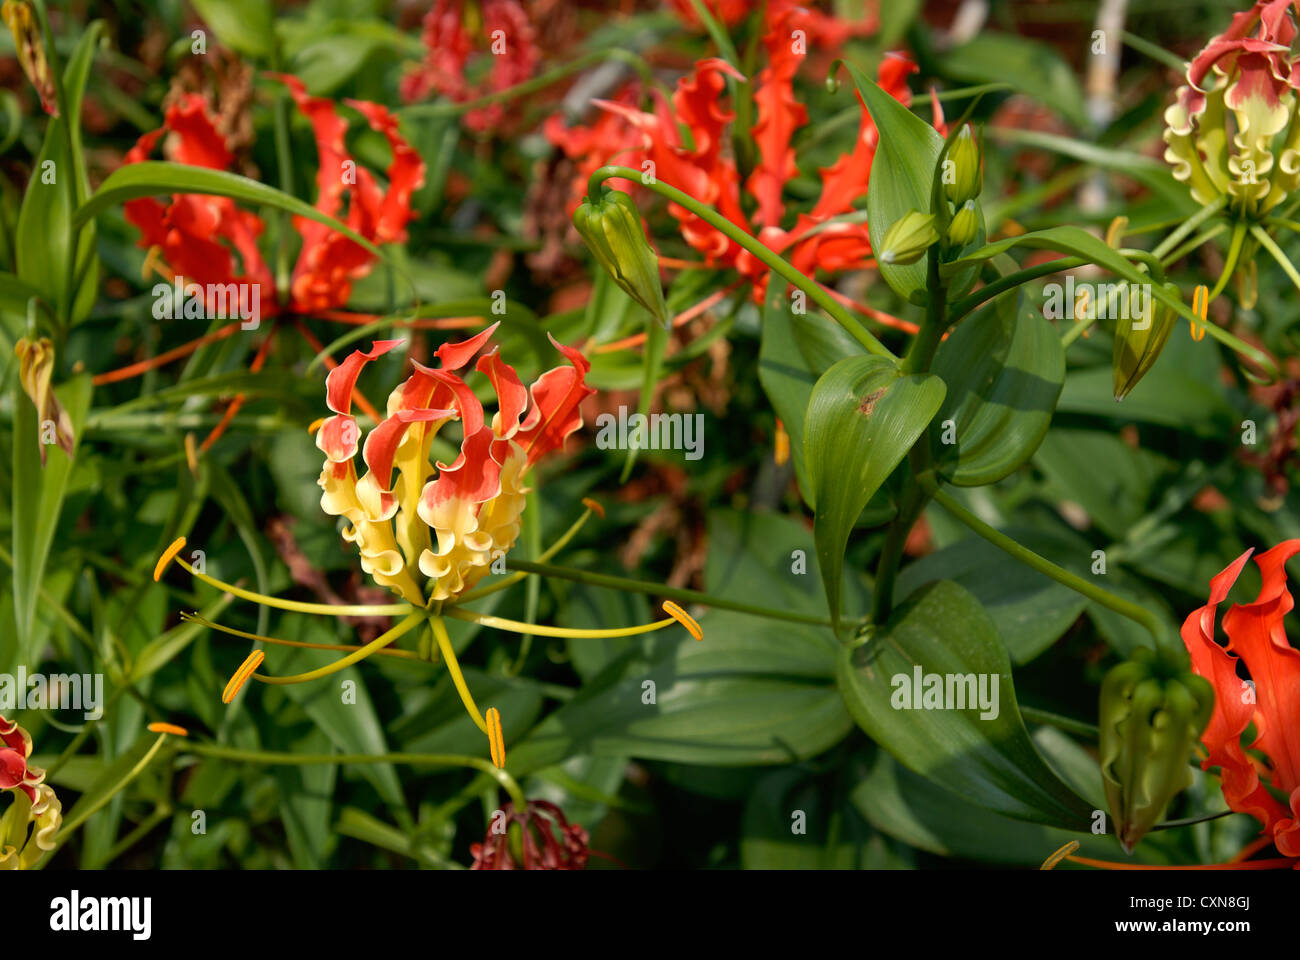 Superb lily stock photos superb lily stock images alamy medicinal plant in dharapuramtamil naduindia izmirmasajfo